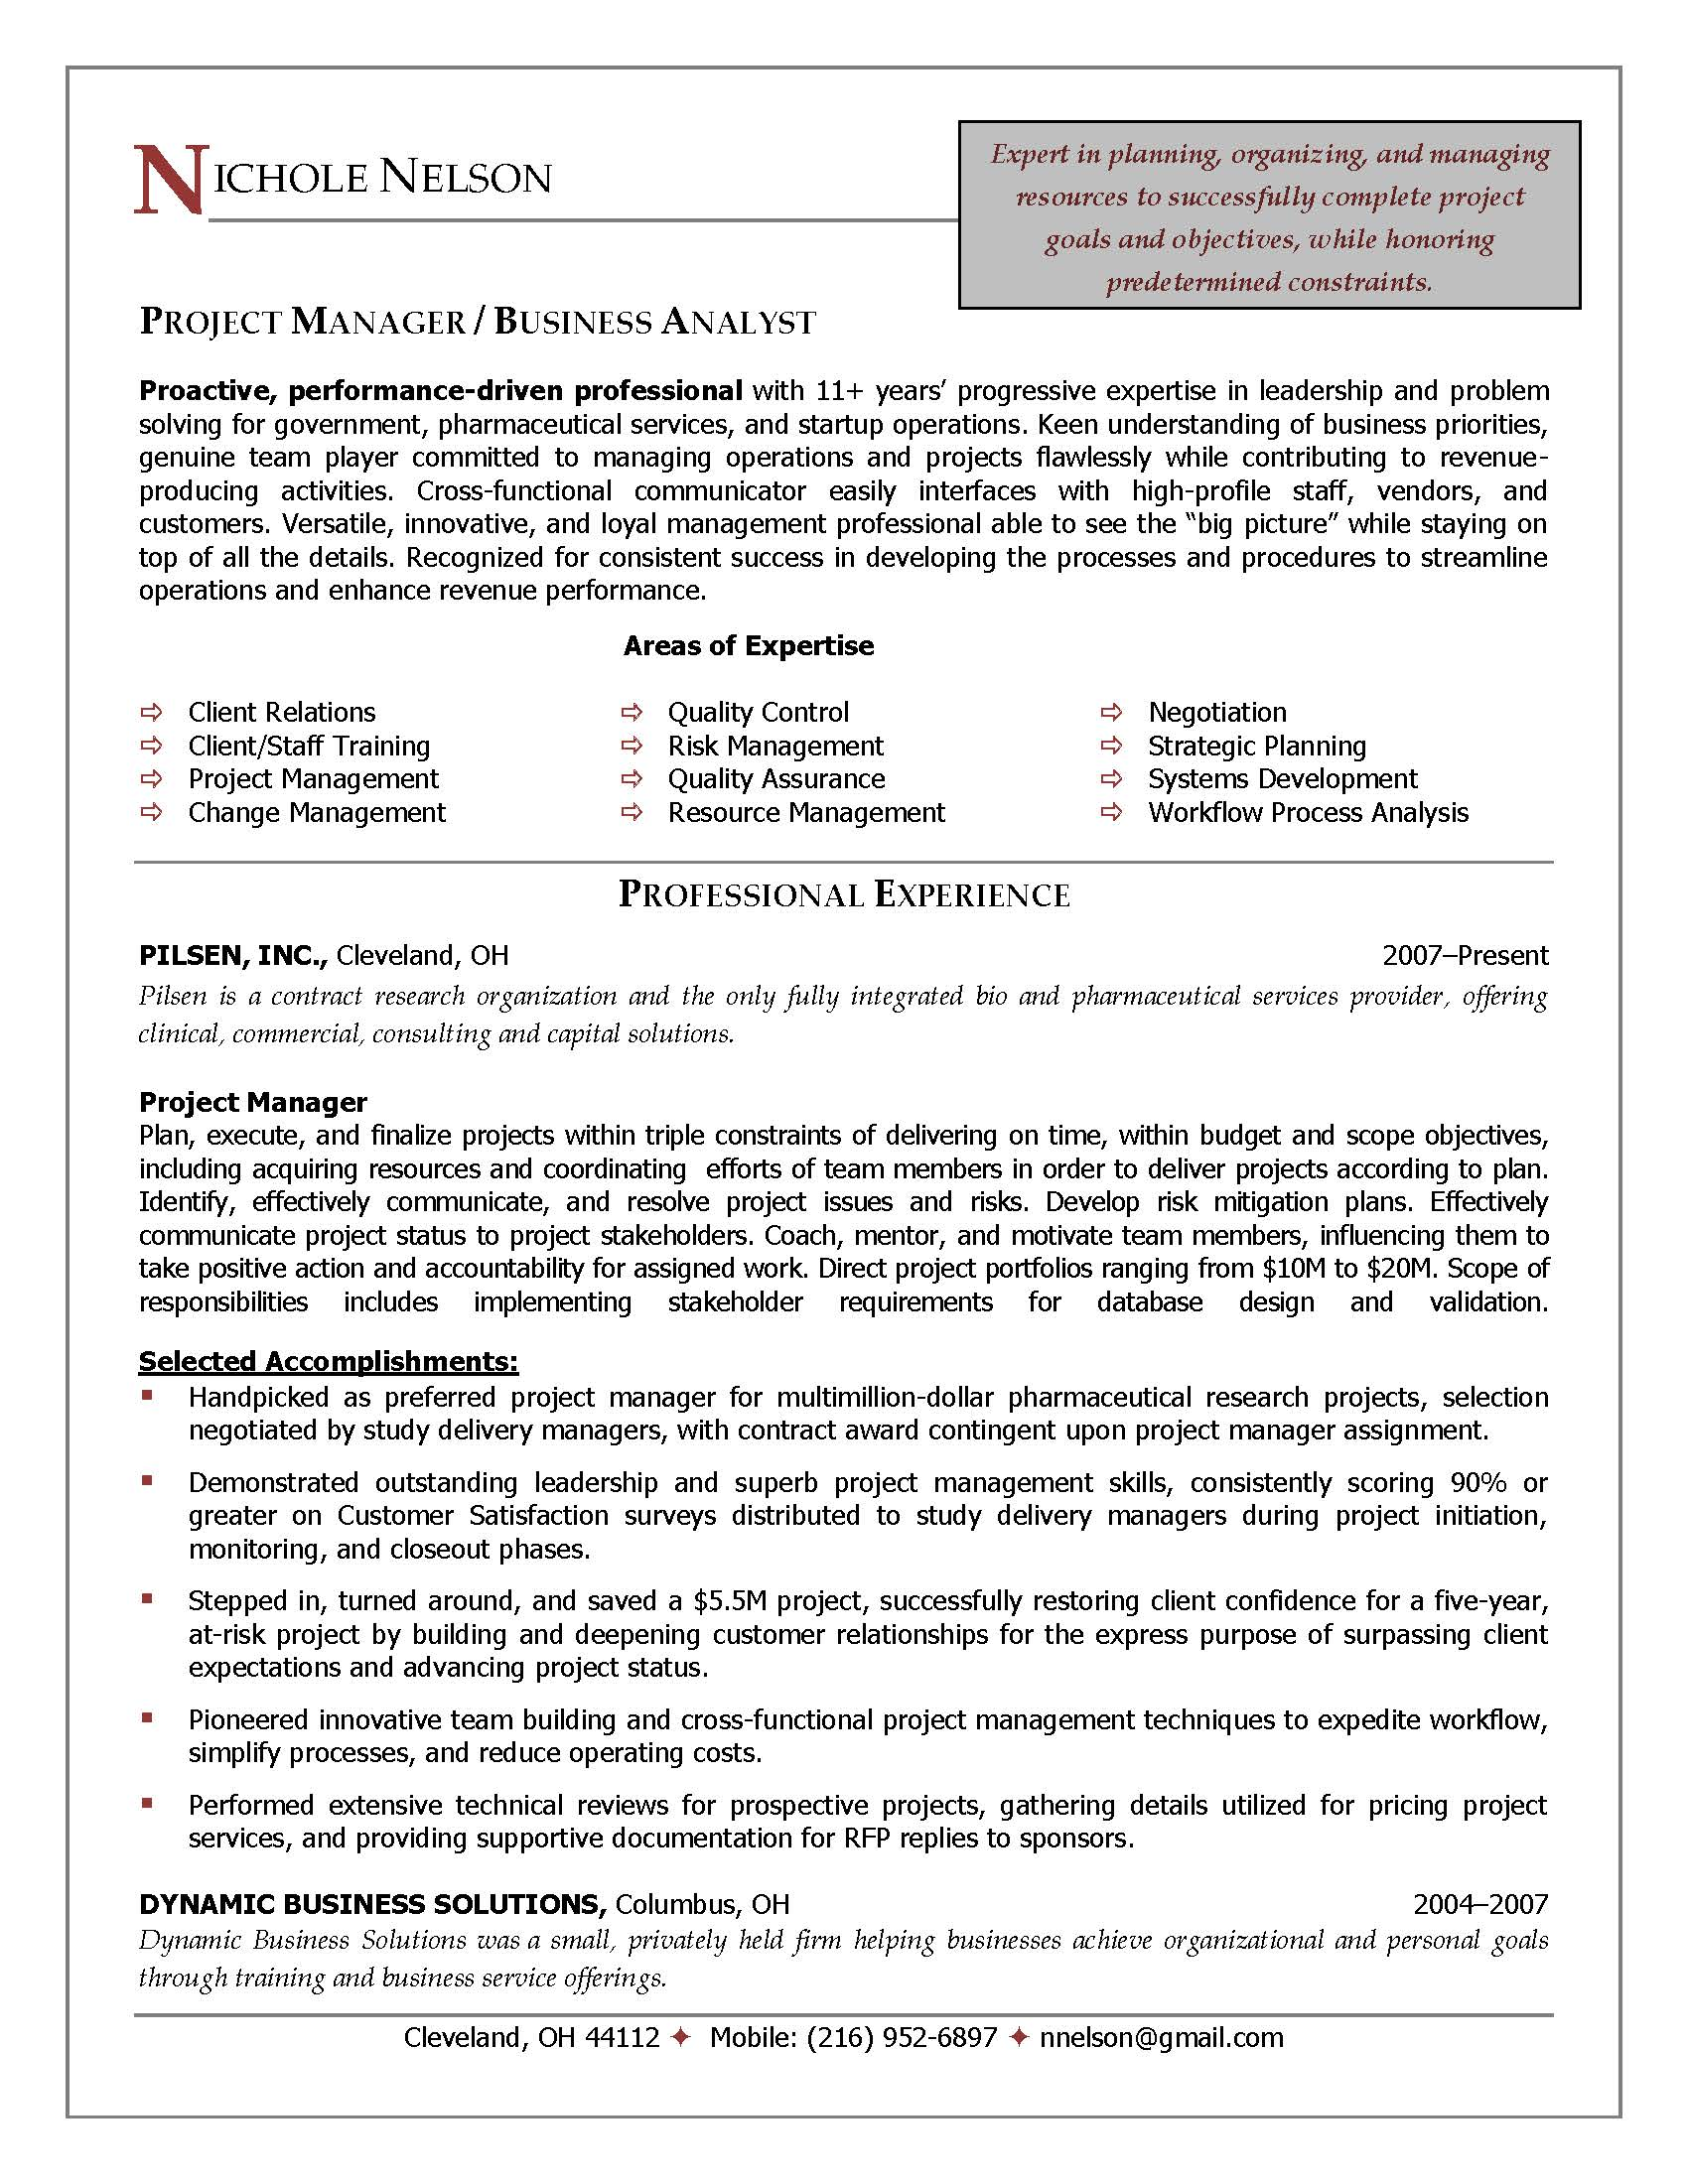 Project Manager Resume Sample, Provided By Elite Resume Writing Services  Program Manager Resume Samples